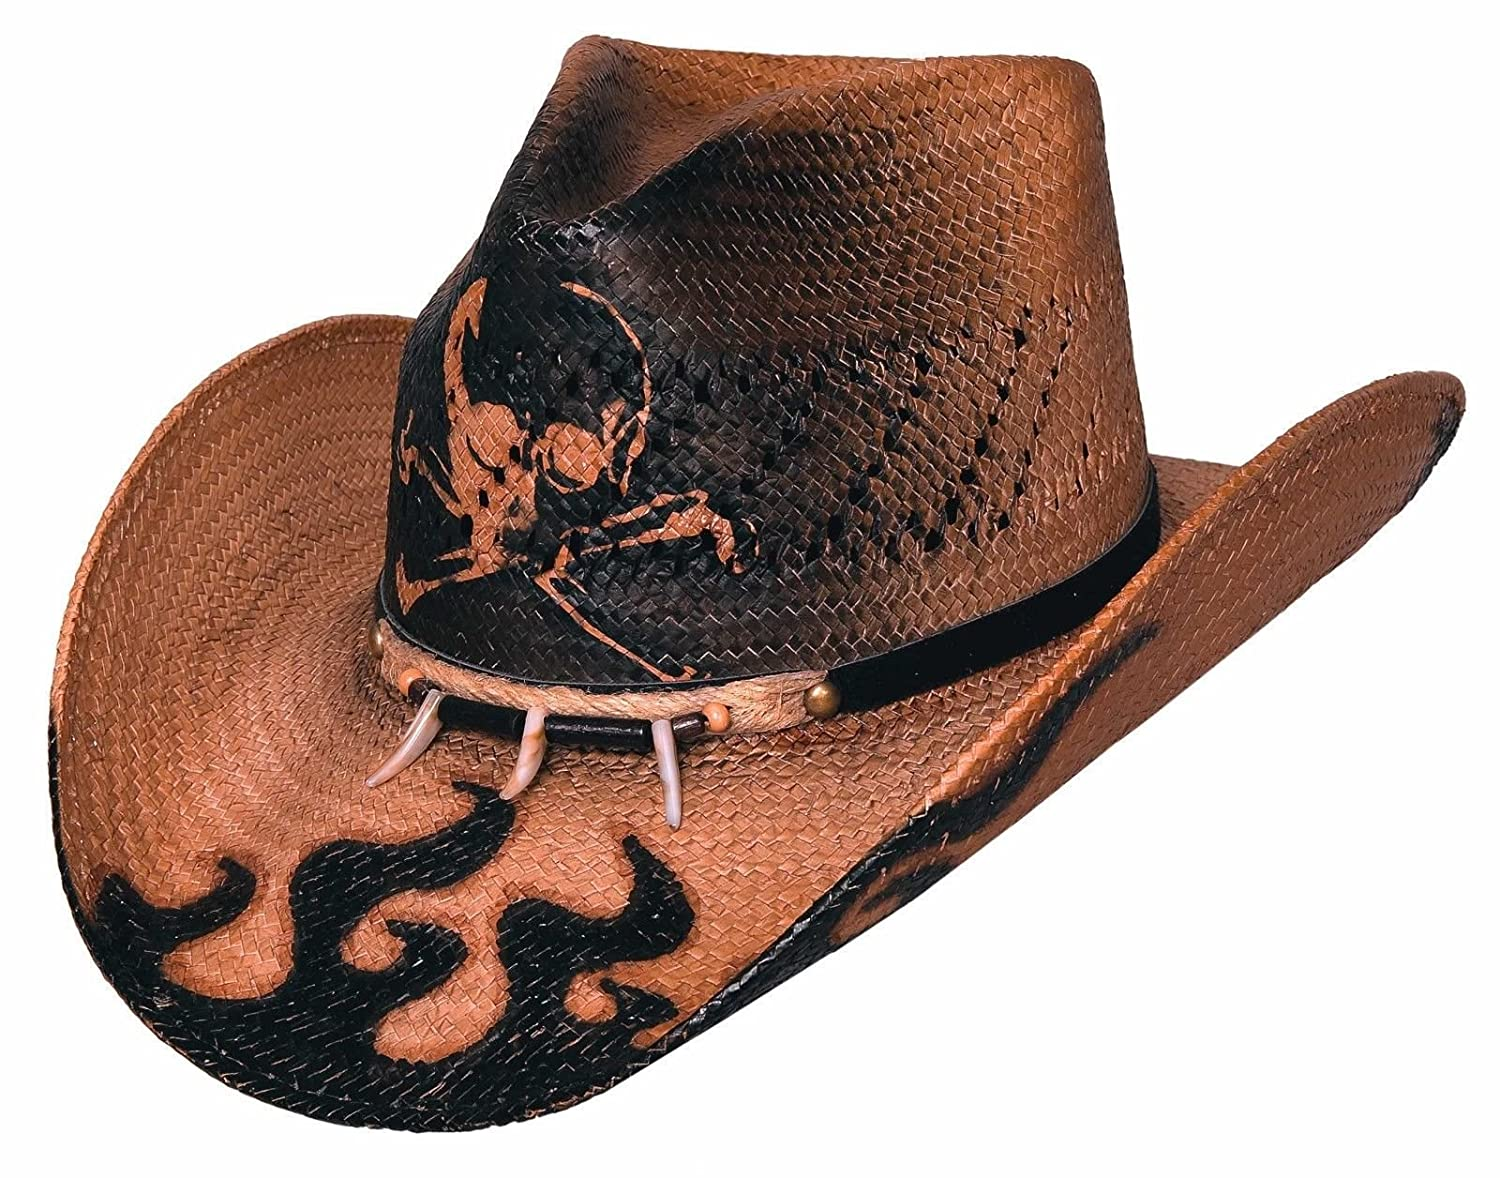 Montecarlo Bullhide Hats - DANGEROUS - Western Toyo Straw Cowboy Hat  (XLarge) at Amazon Women s Clothing store  Cowboy Hats 90a39900c08